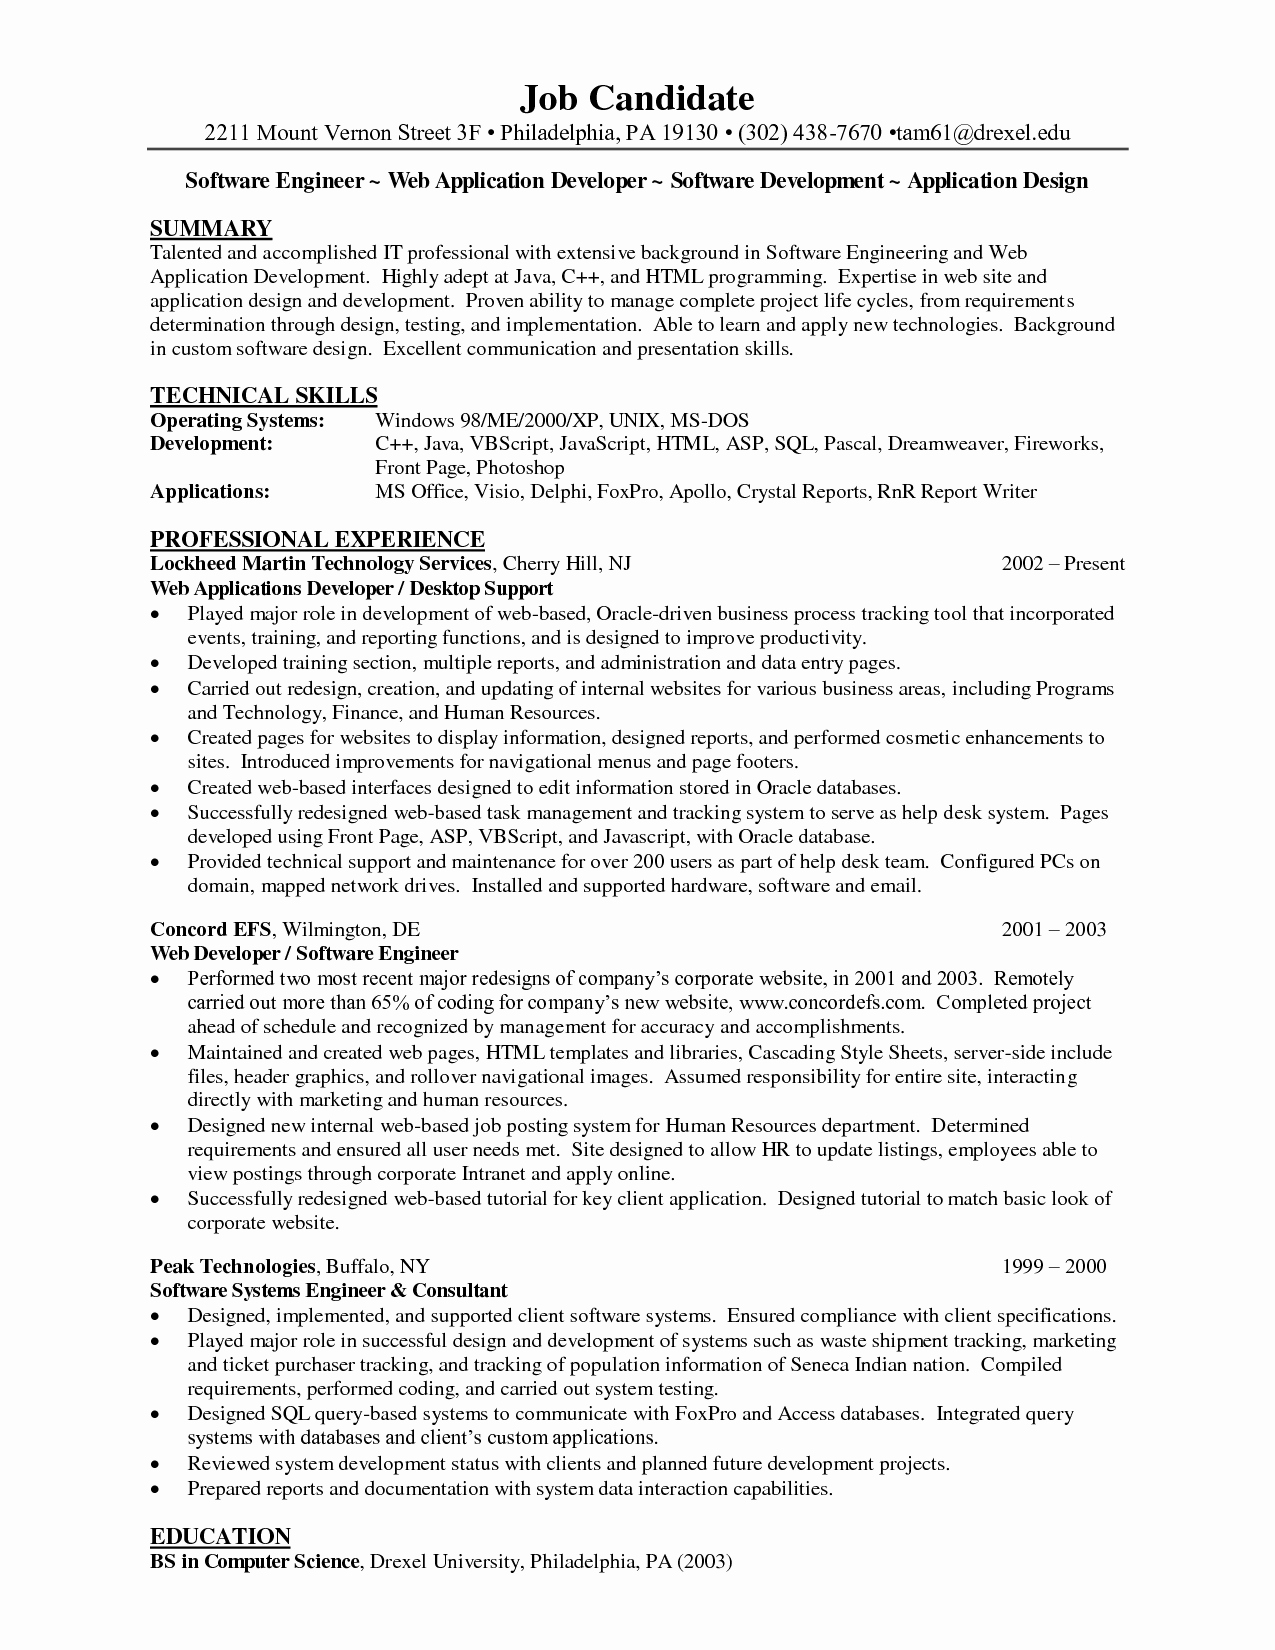 Upwork Cover Letter Template - Sample Resume for software Tester Fresher Awesome Web Developer